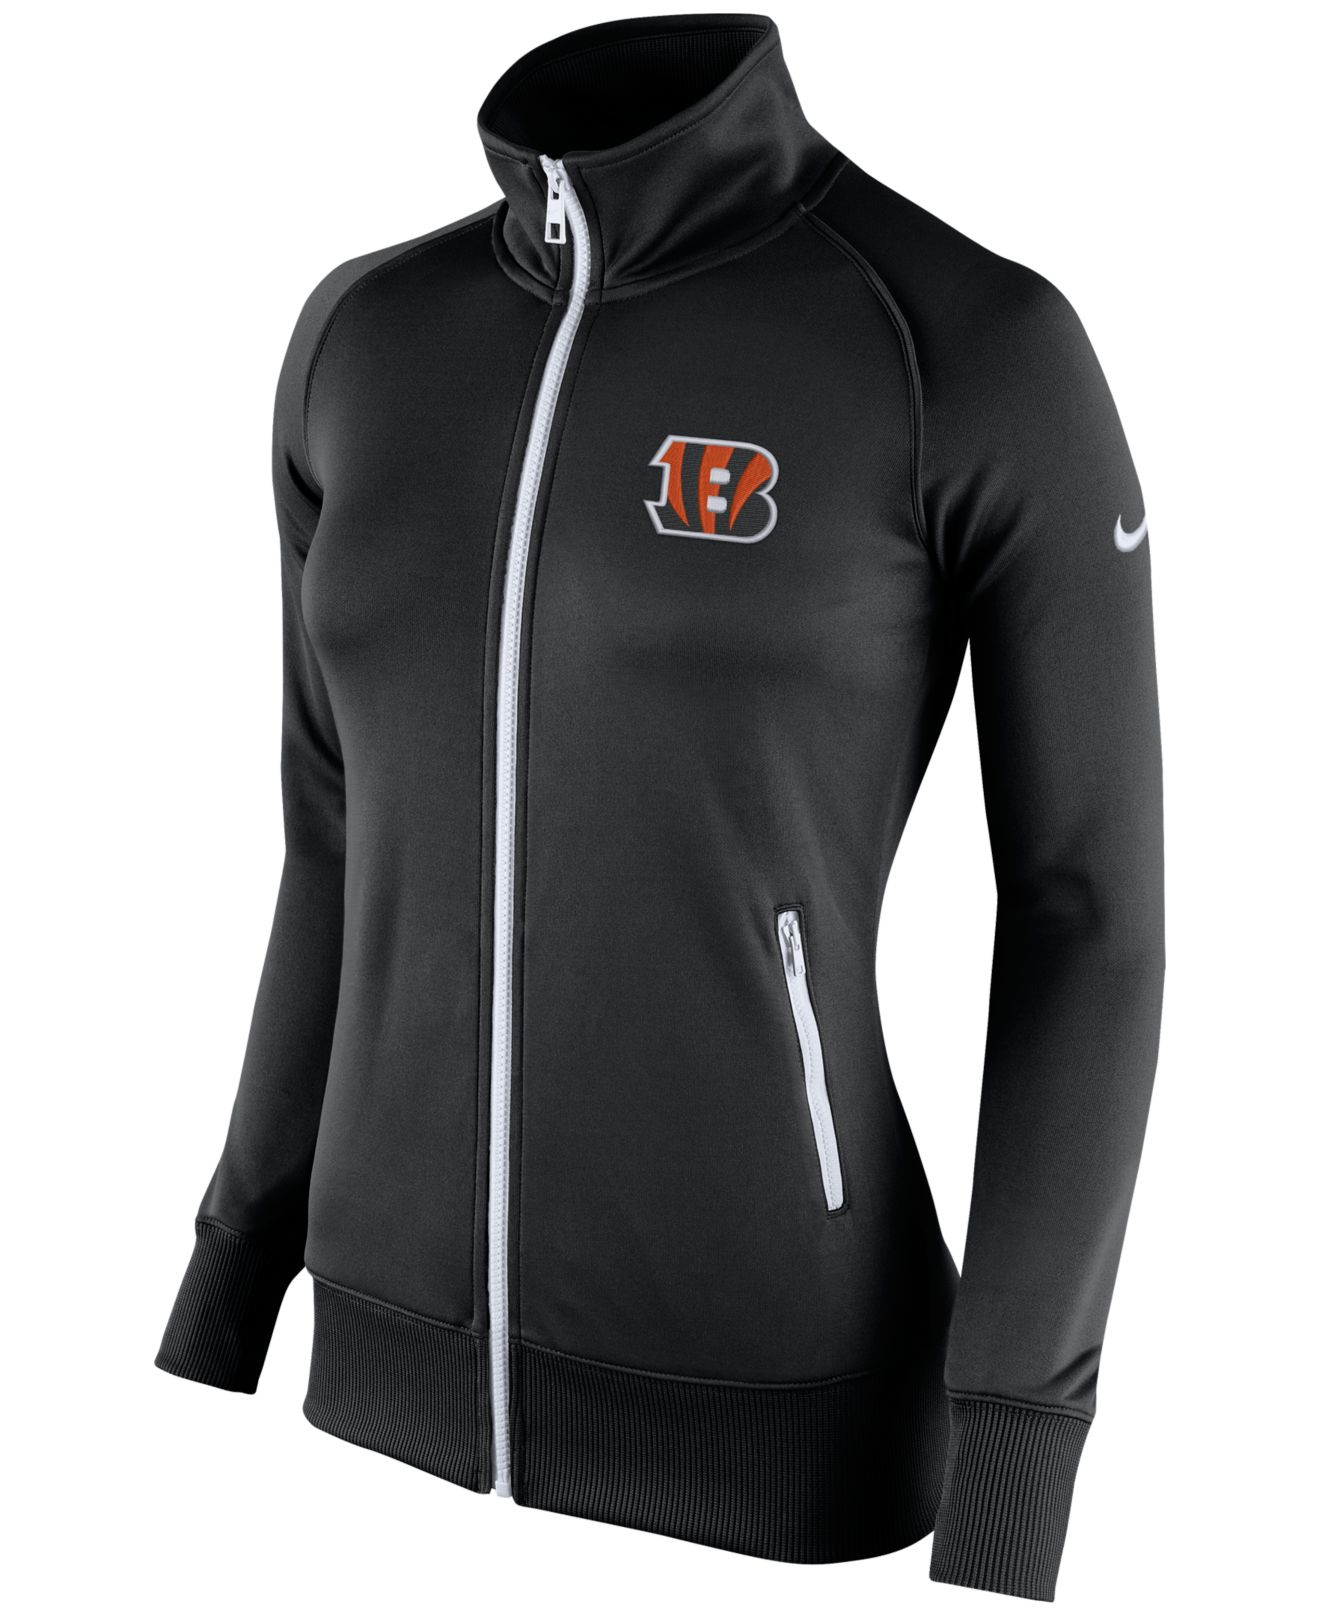 Lyst - Nike Women s Cincinnati Bengals Stadium Track Jacket in Black d4e35a592d